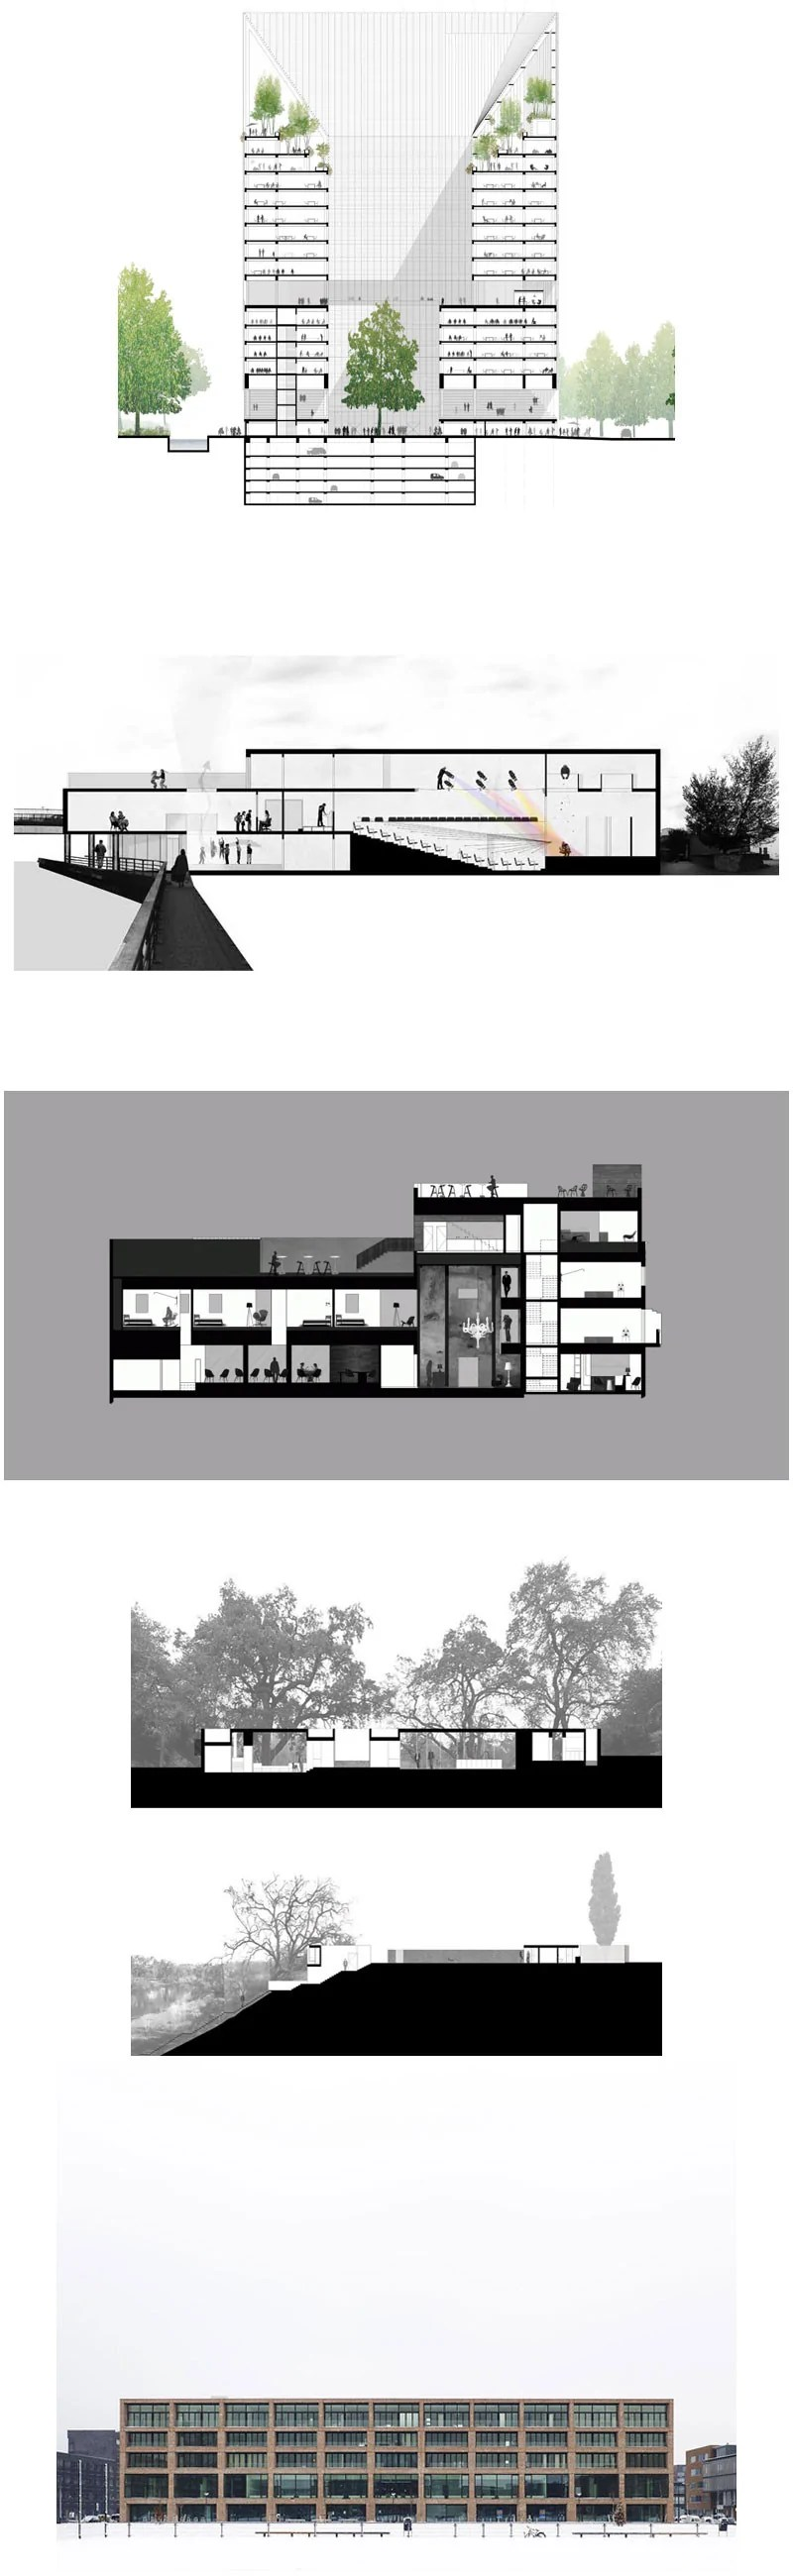 Architectural sections and elevations Gallery V.1